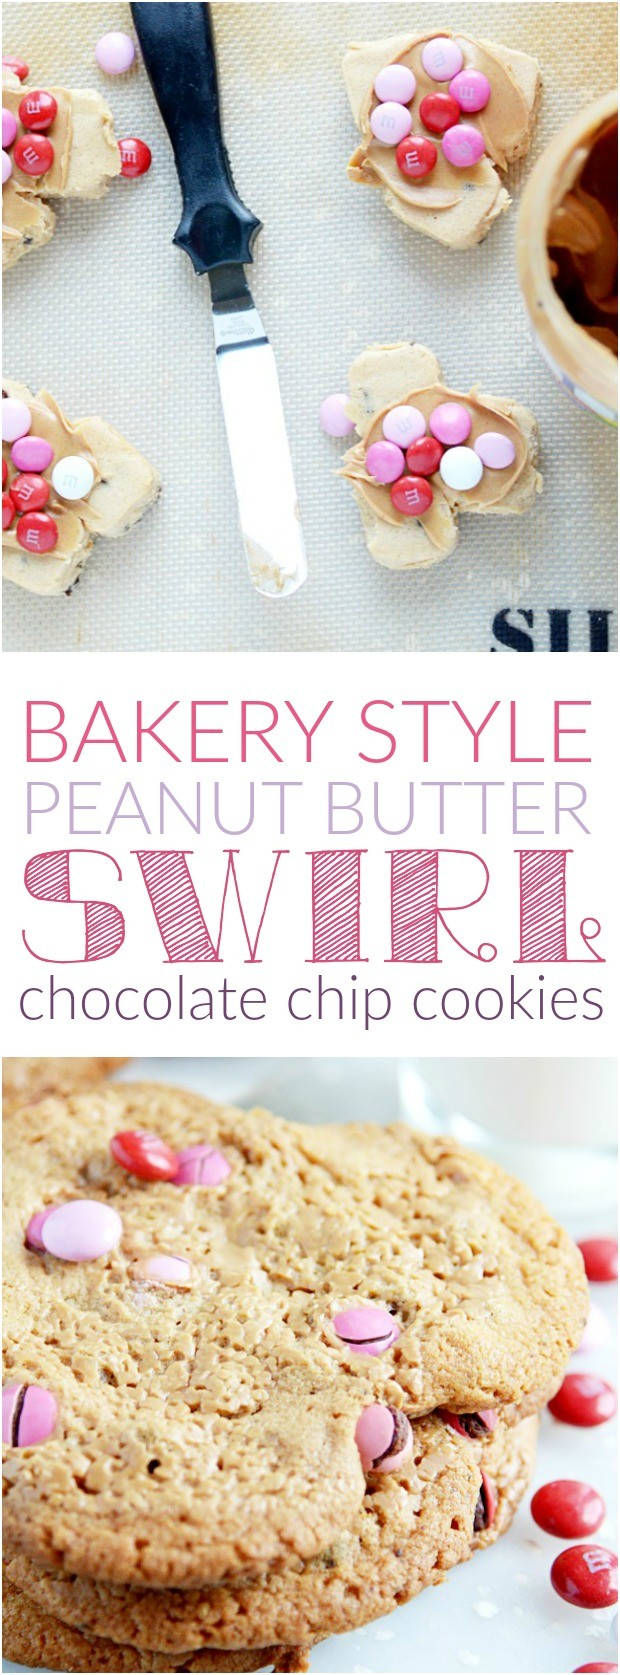 Bakery Style Peanut Butter Swirl Chocolate Chip Cookies ...